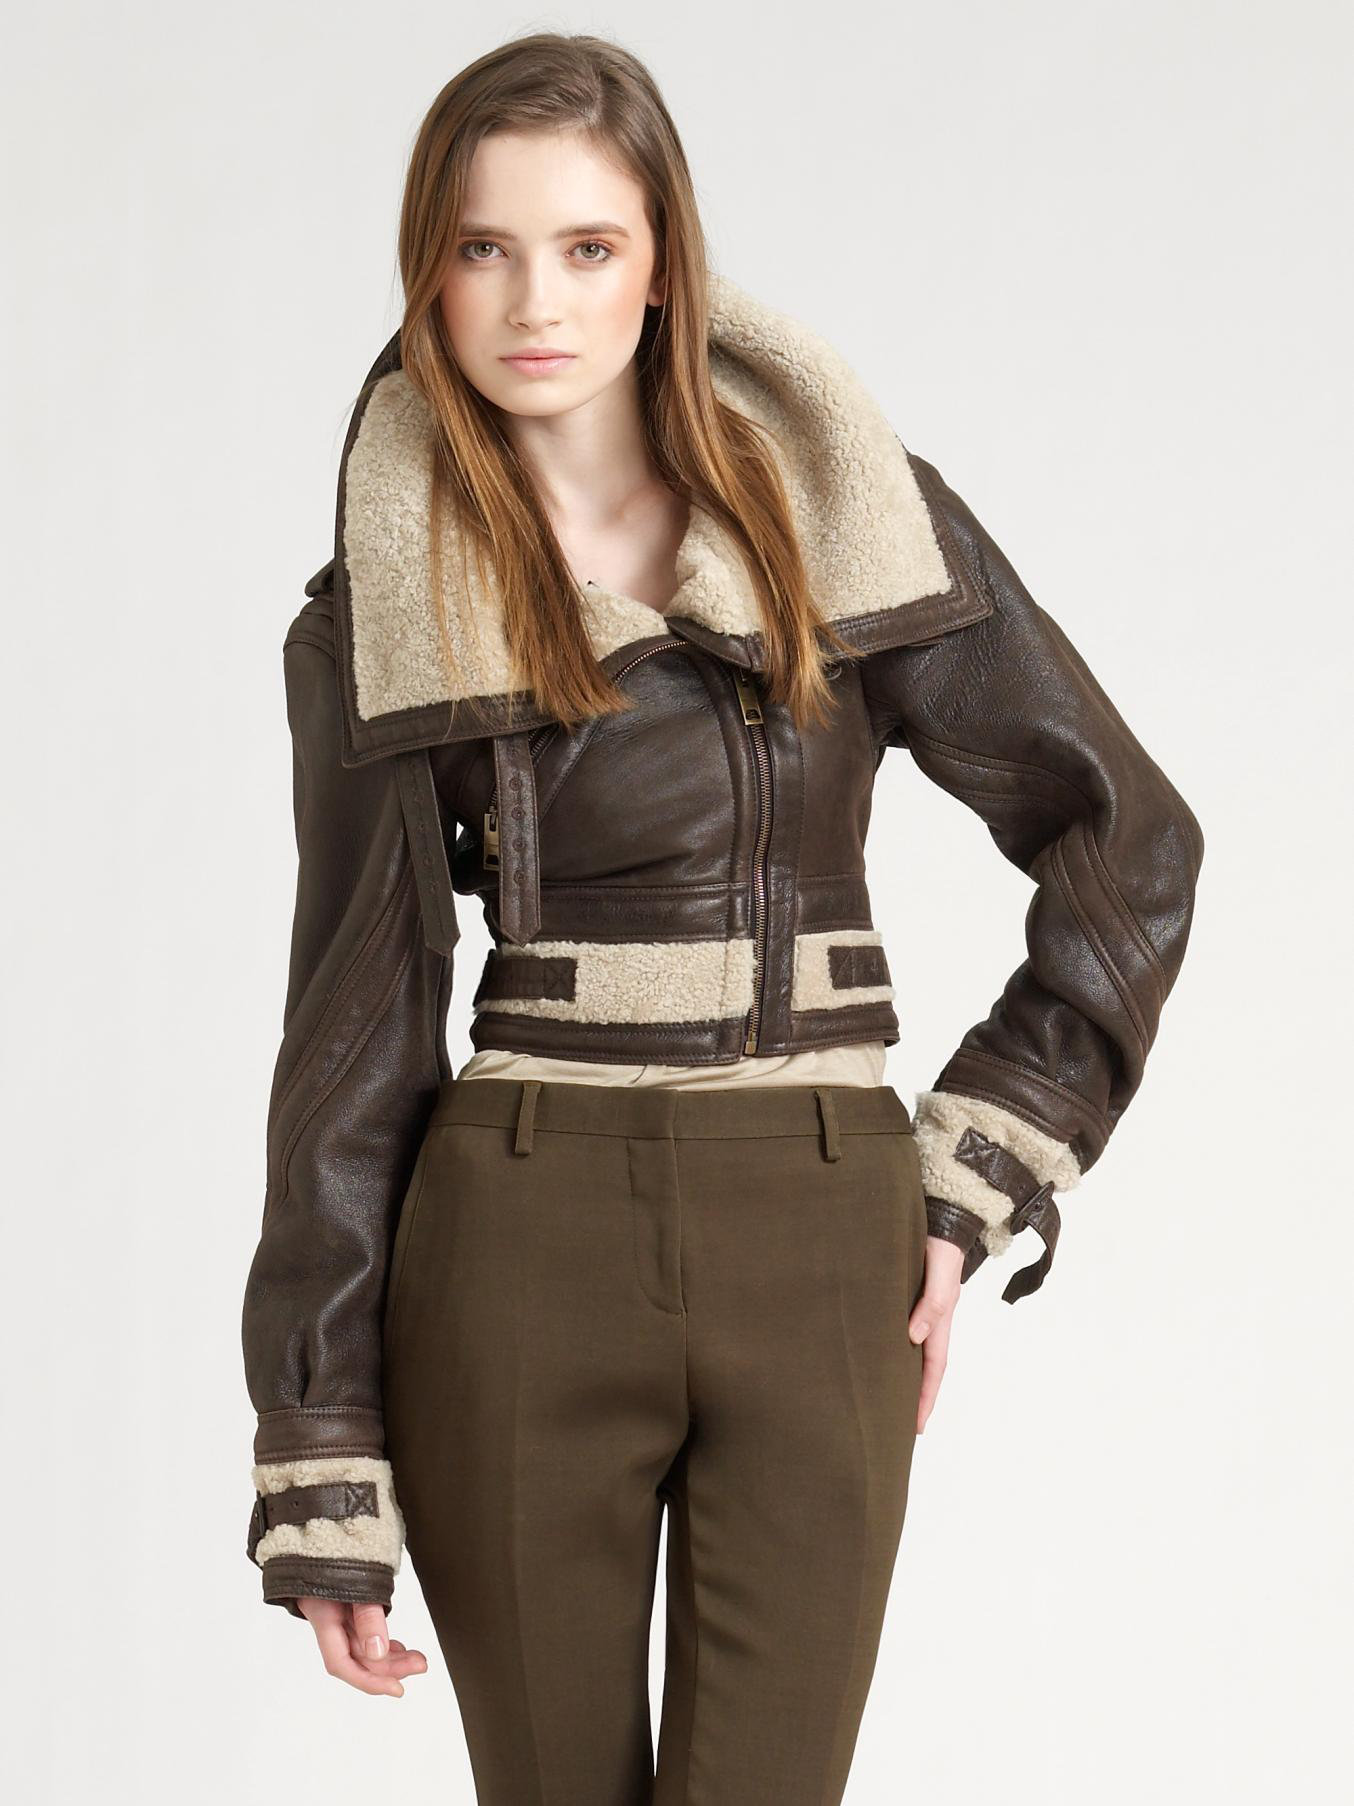 608f956a22a Lyst - Burberry Prorsum Shearling Aviator Jacket in Brown